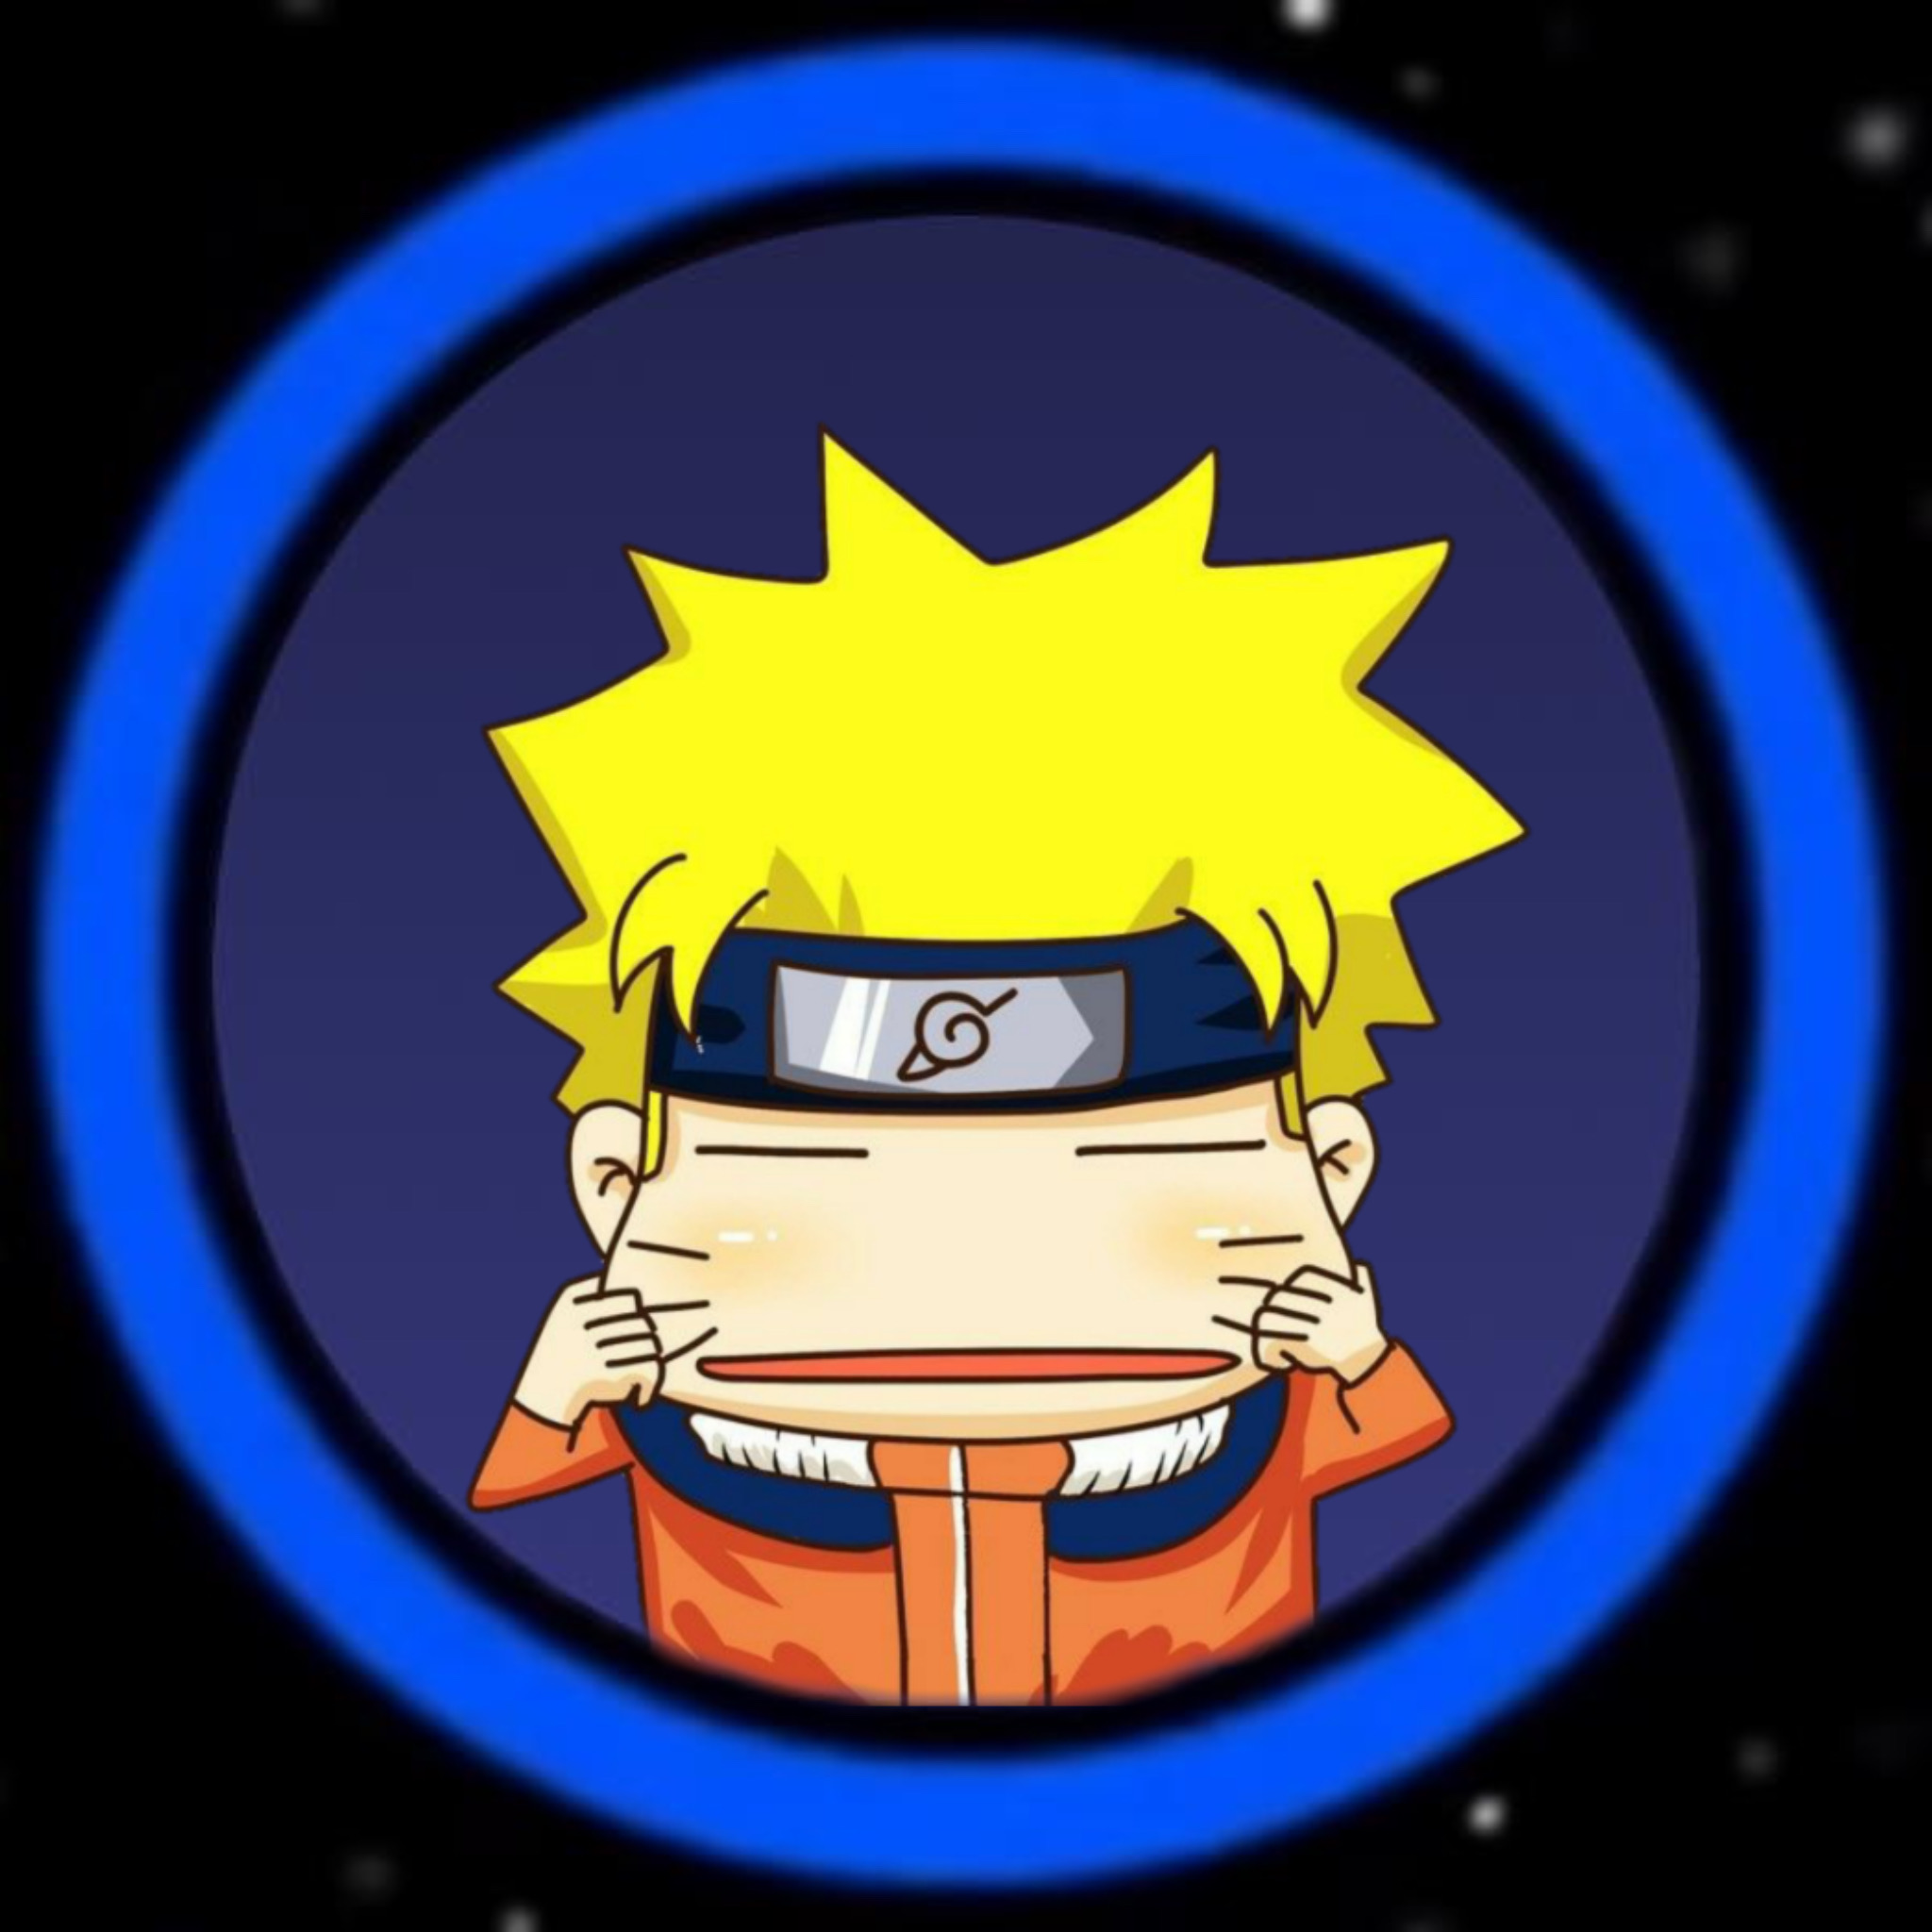 Pfp Profile Profilepicture Image By Just A Person